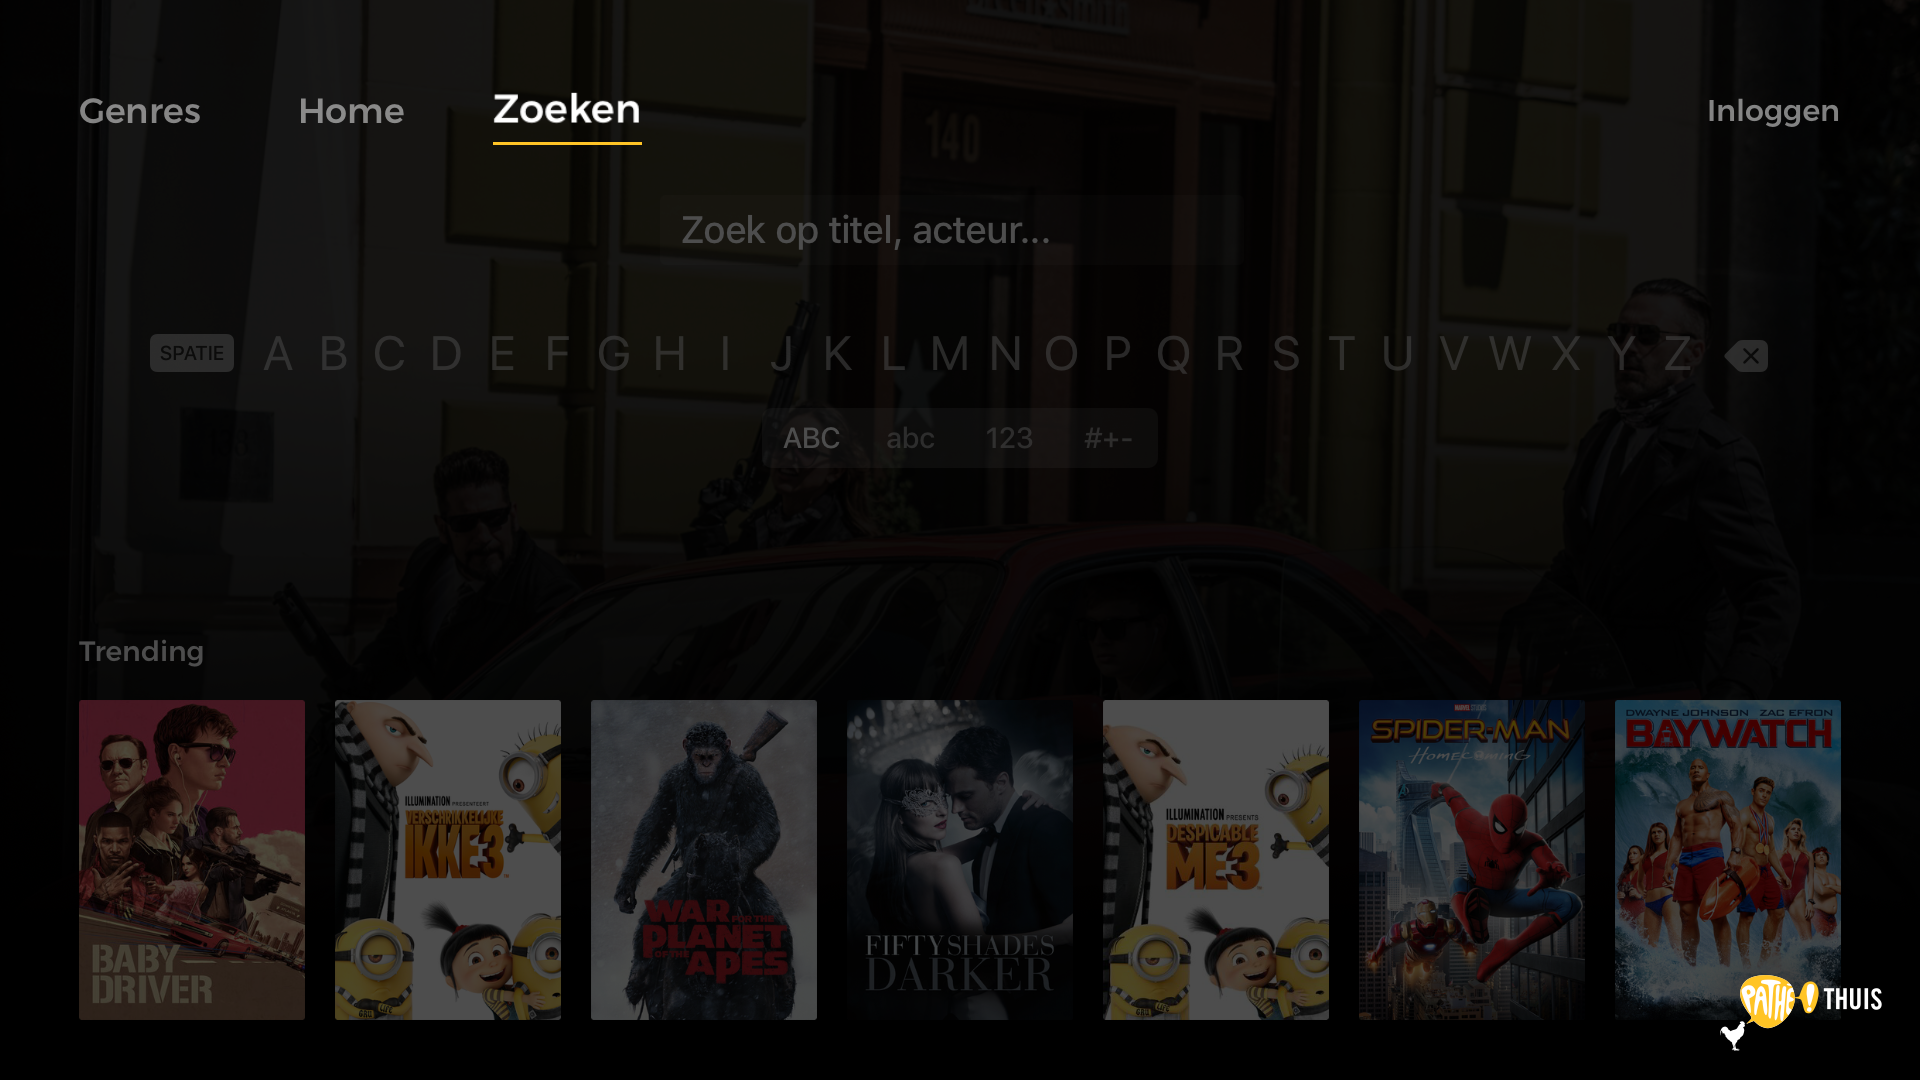 pathe thuis 002 apple tv